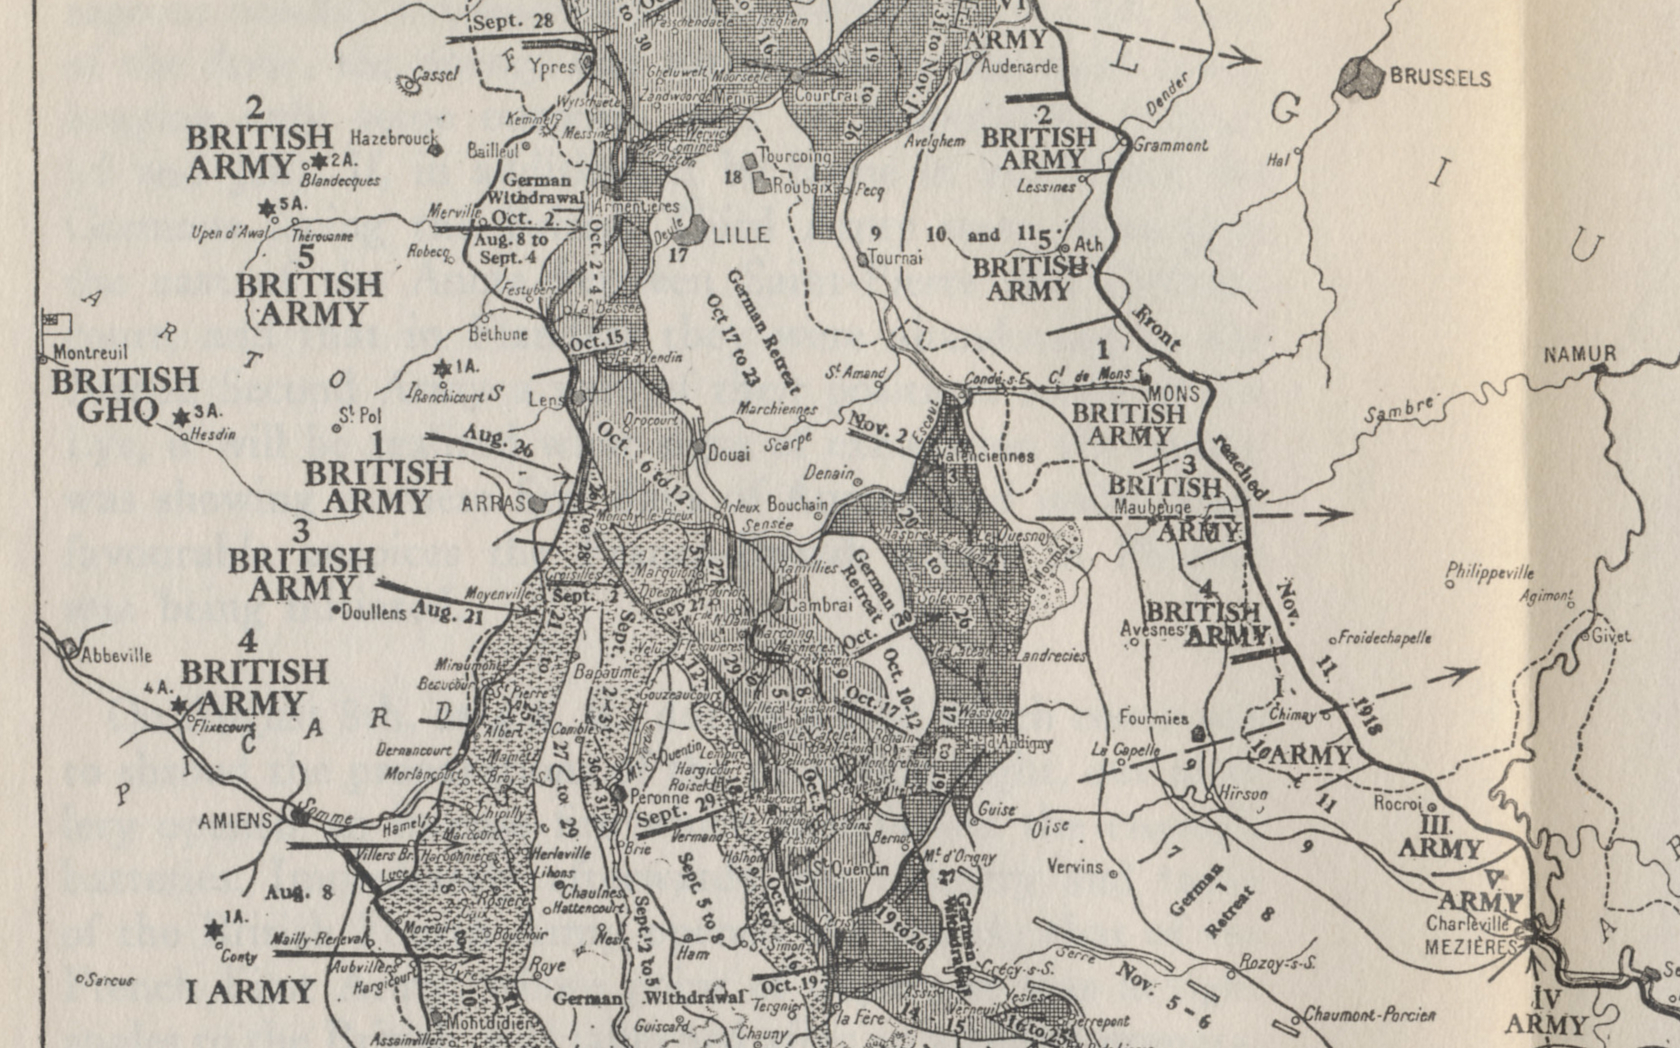 Detail showing the British sector of the Western Front from a map of the Allied offensives of 1918, from July 18 and the Second Battle of the Marne to the Armistice on November 11. From %i1%The Memoirs of Marshall Foch%i0% by Marshall Foch. The 1st and other armies to the south are French.